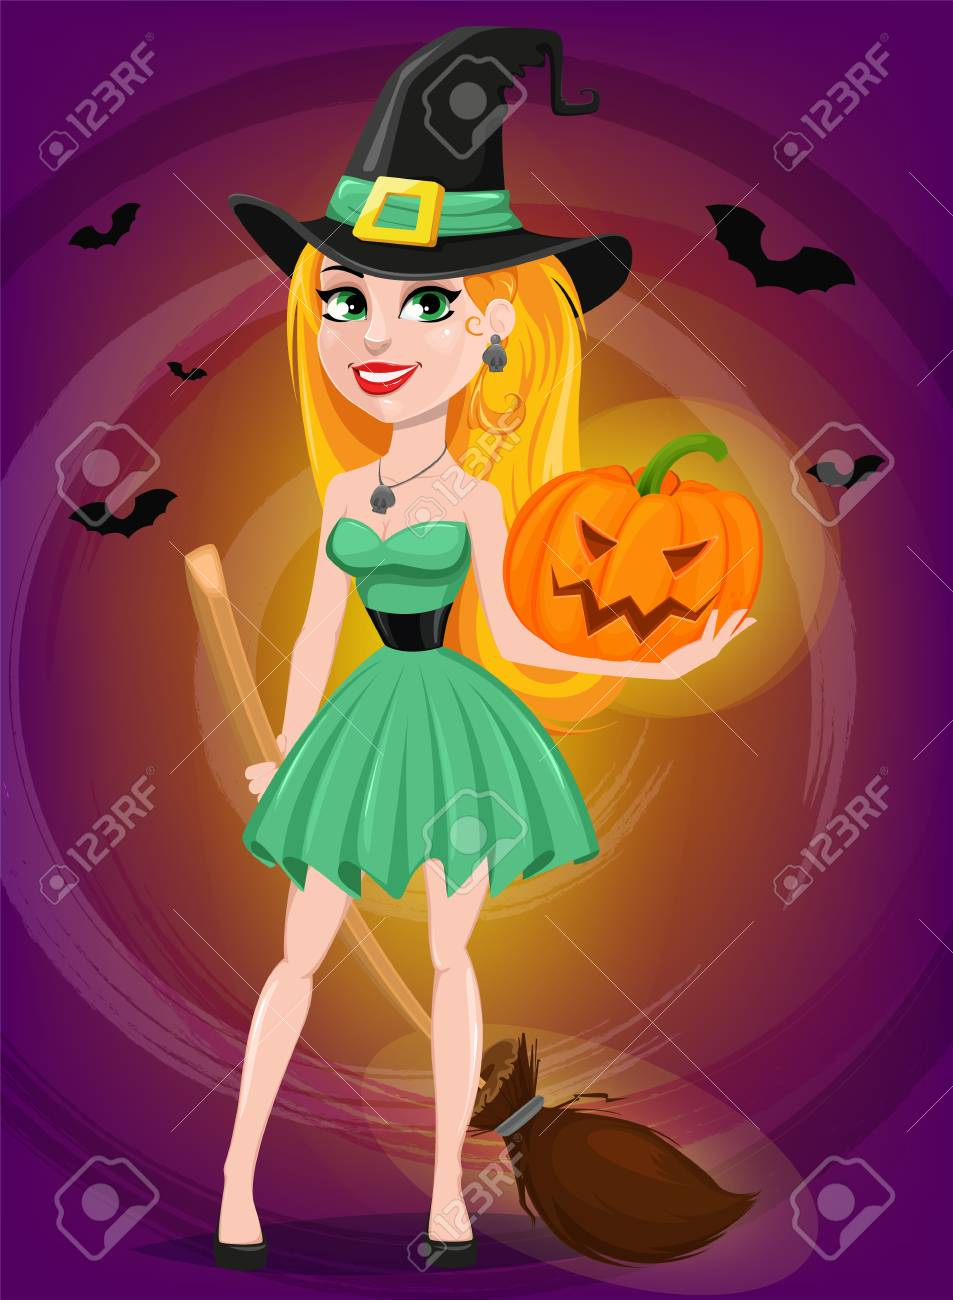 Beautiful lady witch wearing pilgrim hat and holding broom and pumpkin. 2ffdba60ec4